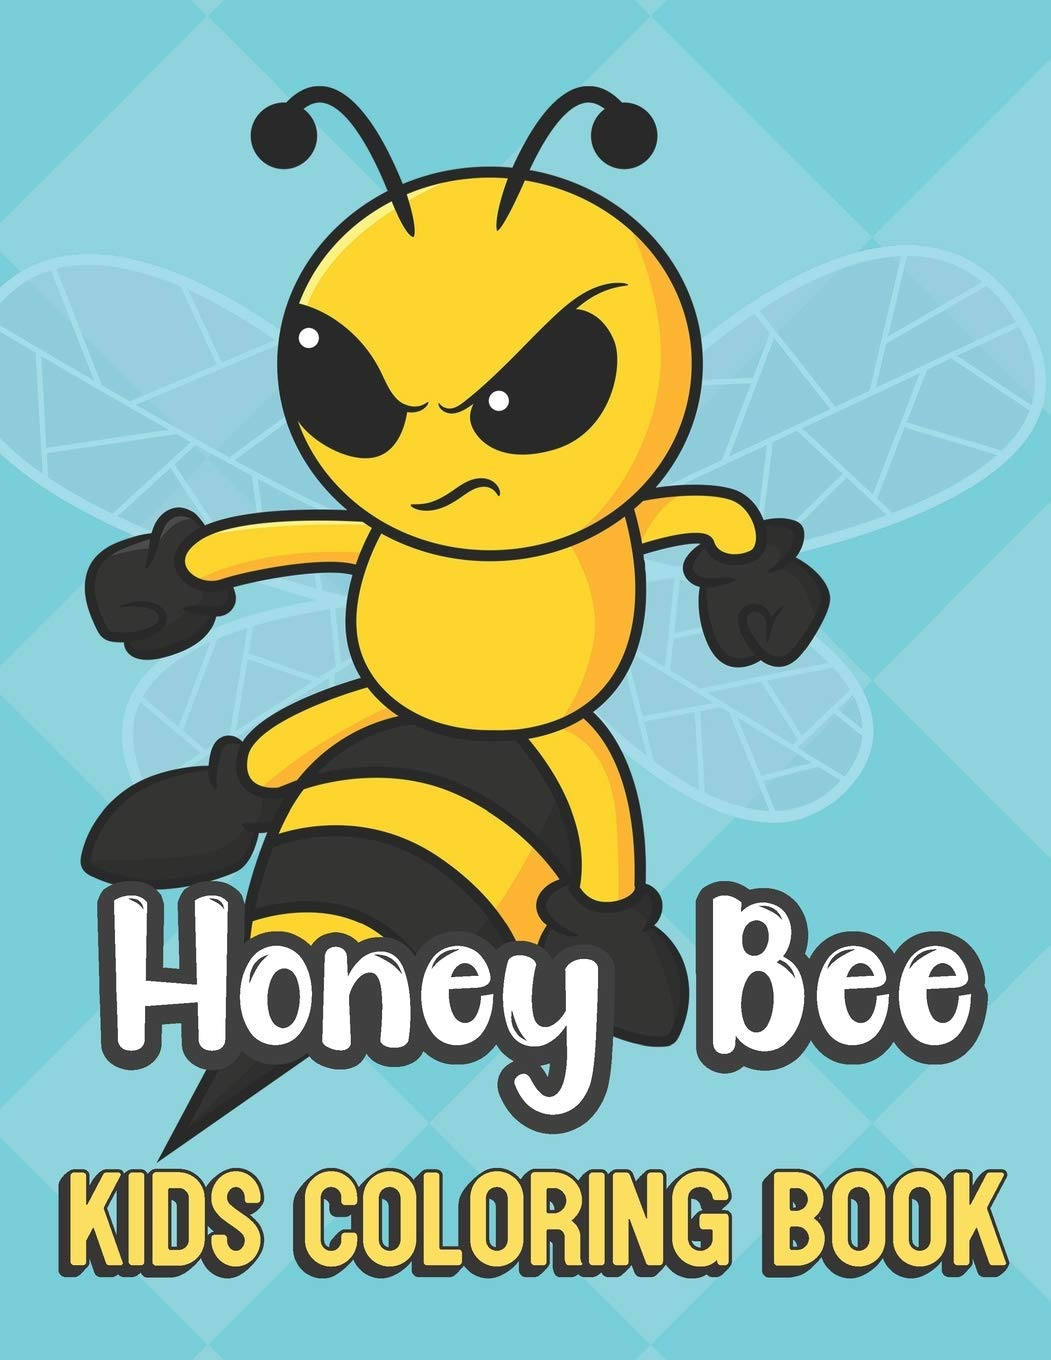 - Honey Bee Kids Coloring Book: Flying Yellow And Black Bee Color